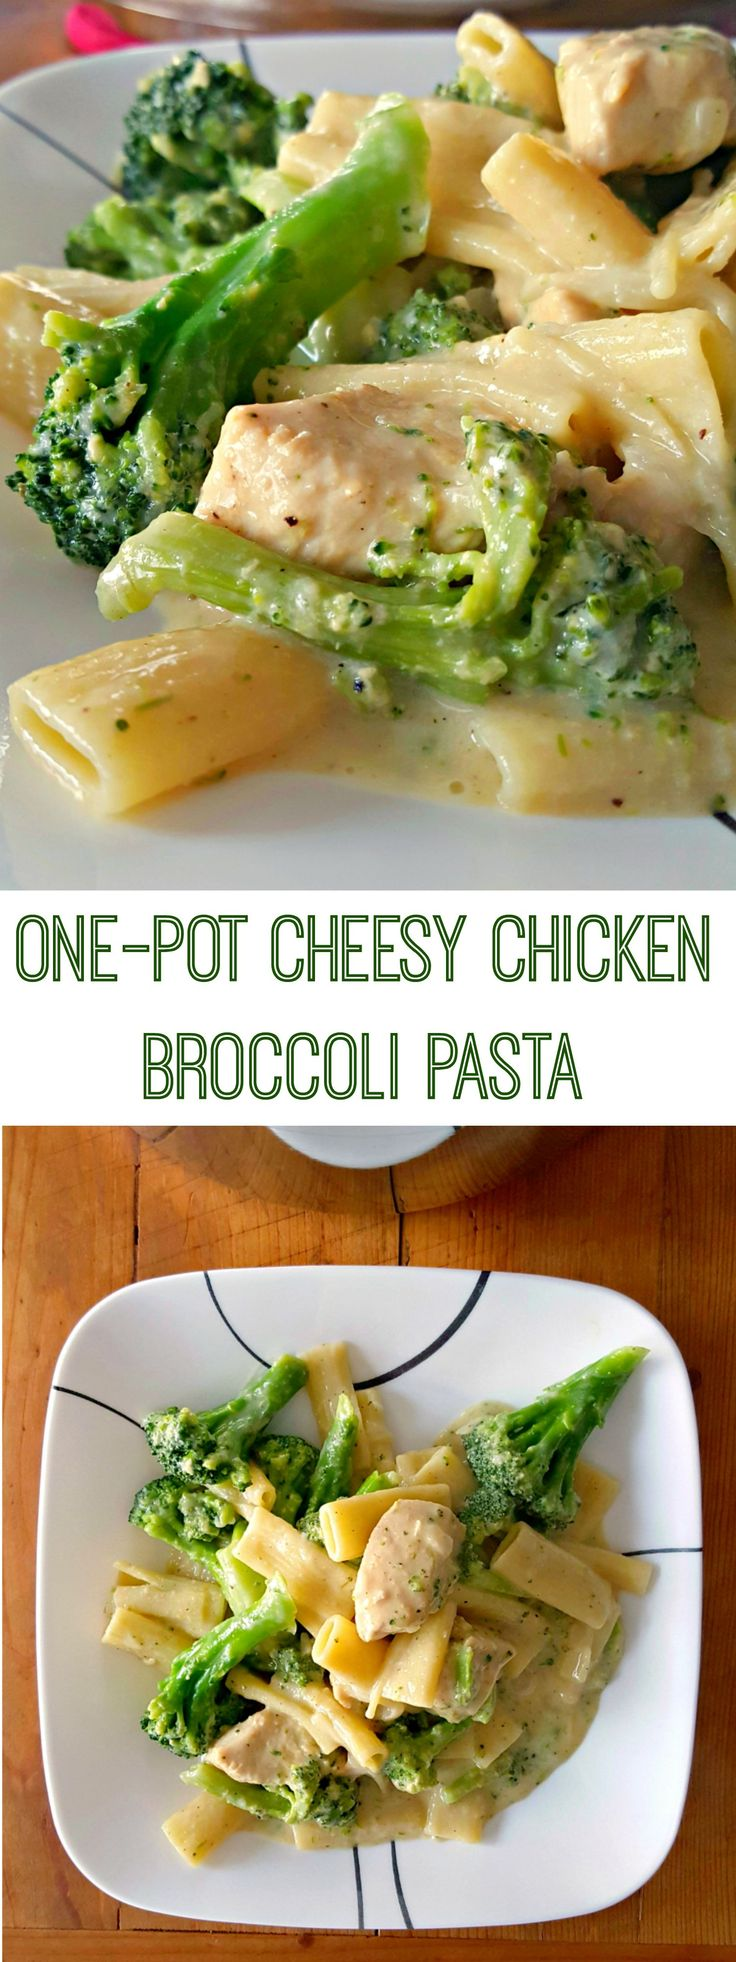 Broccoli and cheddar is the perfect combination! It's also perfect in this Green and White One Pot Pasta aka Broccoli Cheddar Chicken Pasta; a one pot meal on the table super quick!